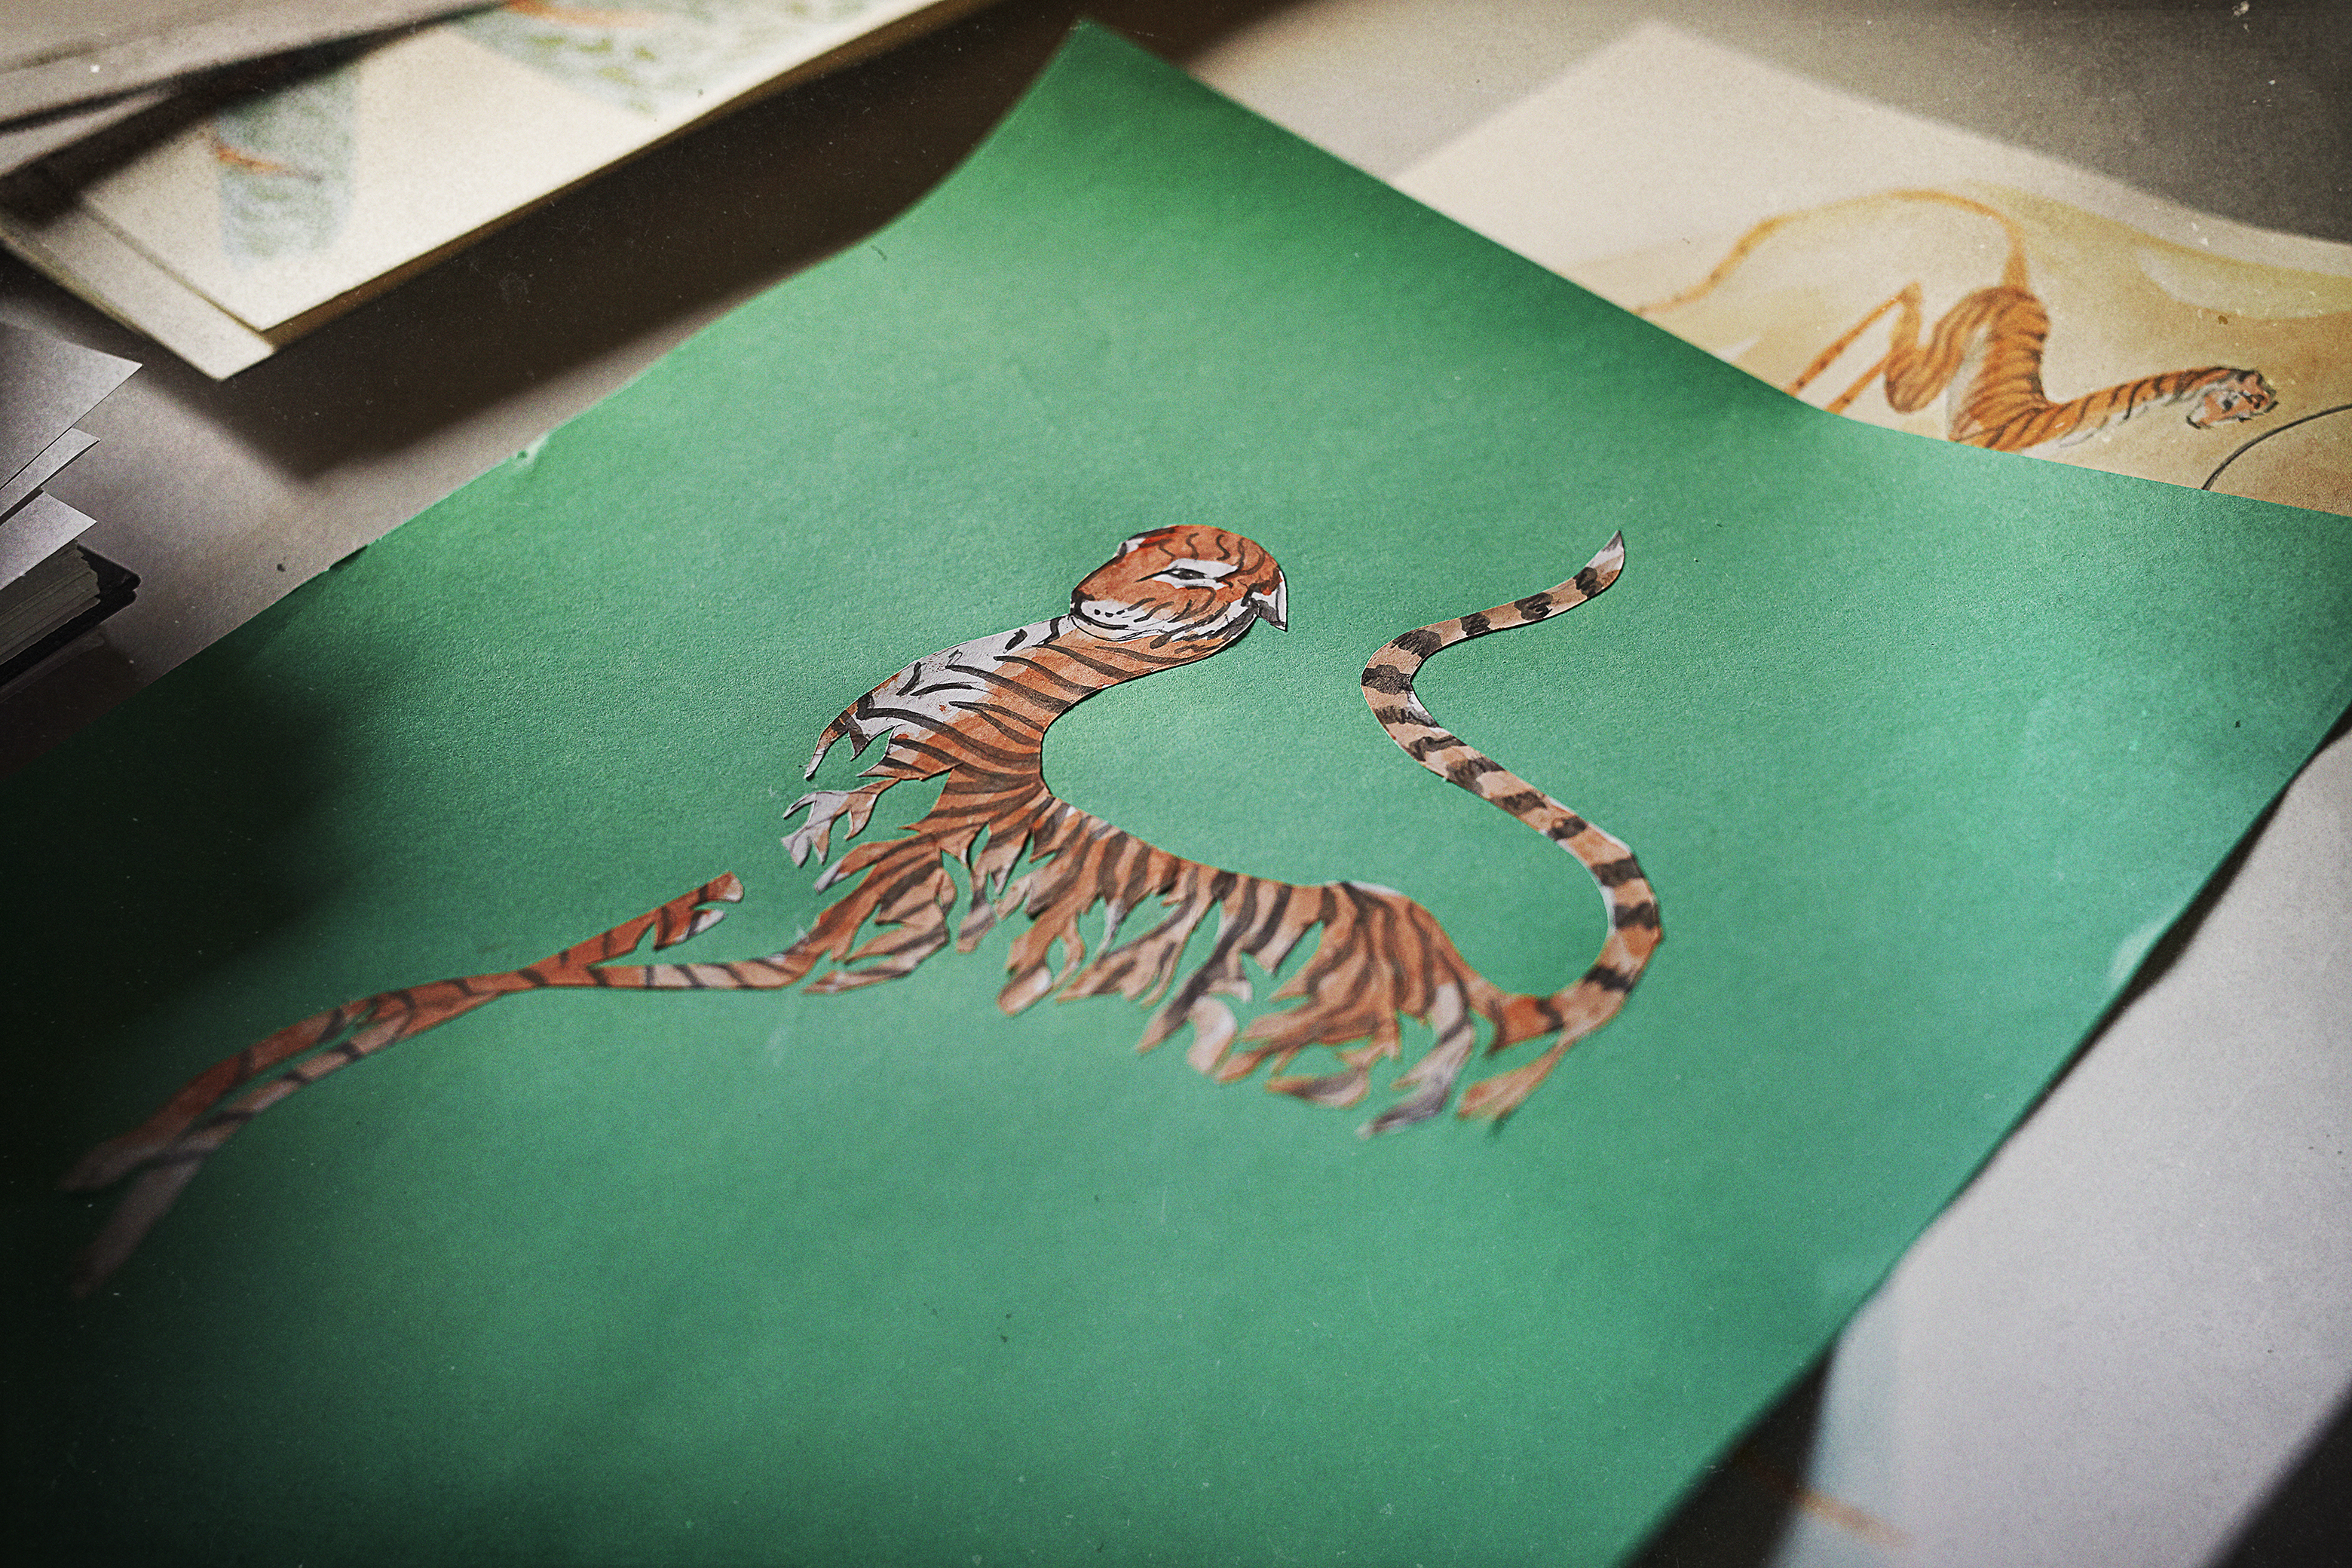 Meryl Smith's Nameless design was inspired by a wild tiger that was discovered injured by snares in Malaysia